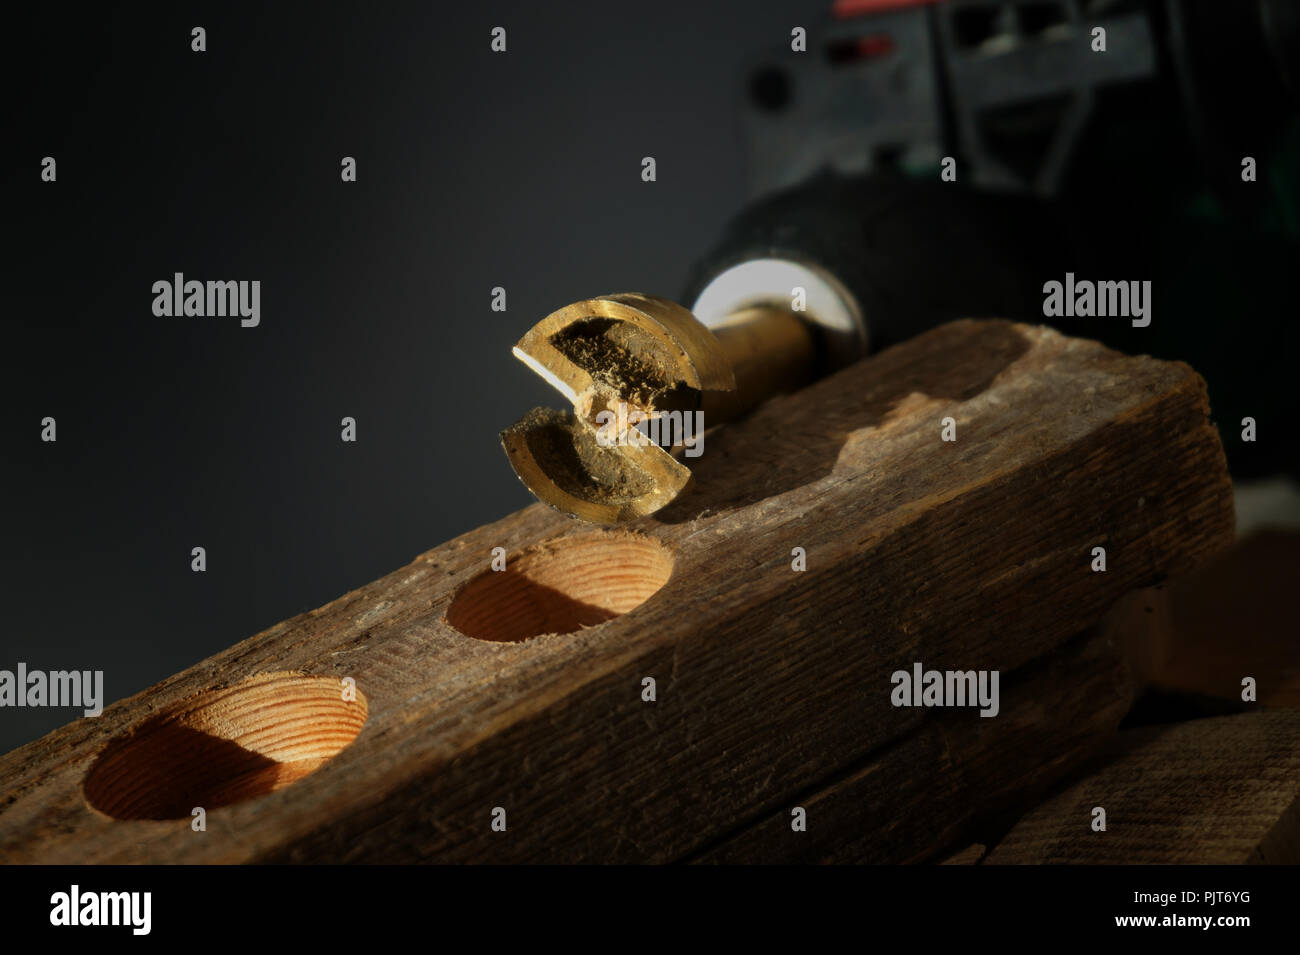 Close up on small metal tool for drilling circular holes sitting on top of wooden block over black background - Stock Image